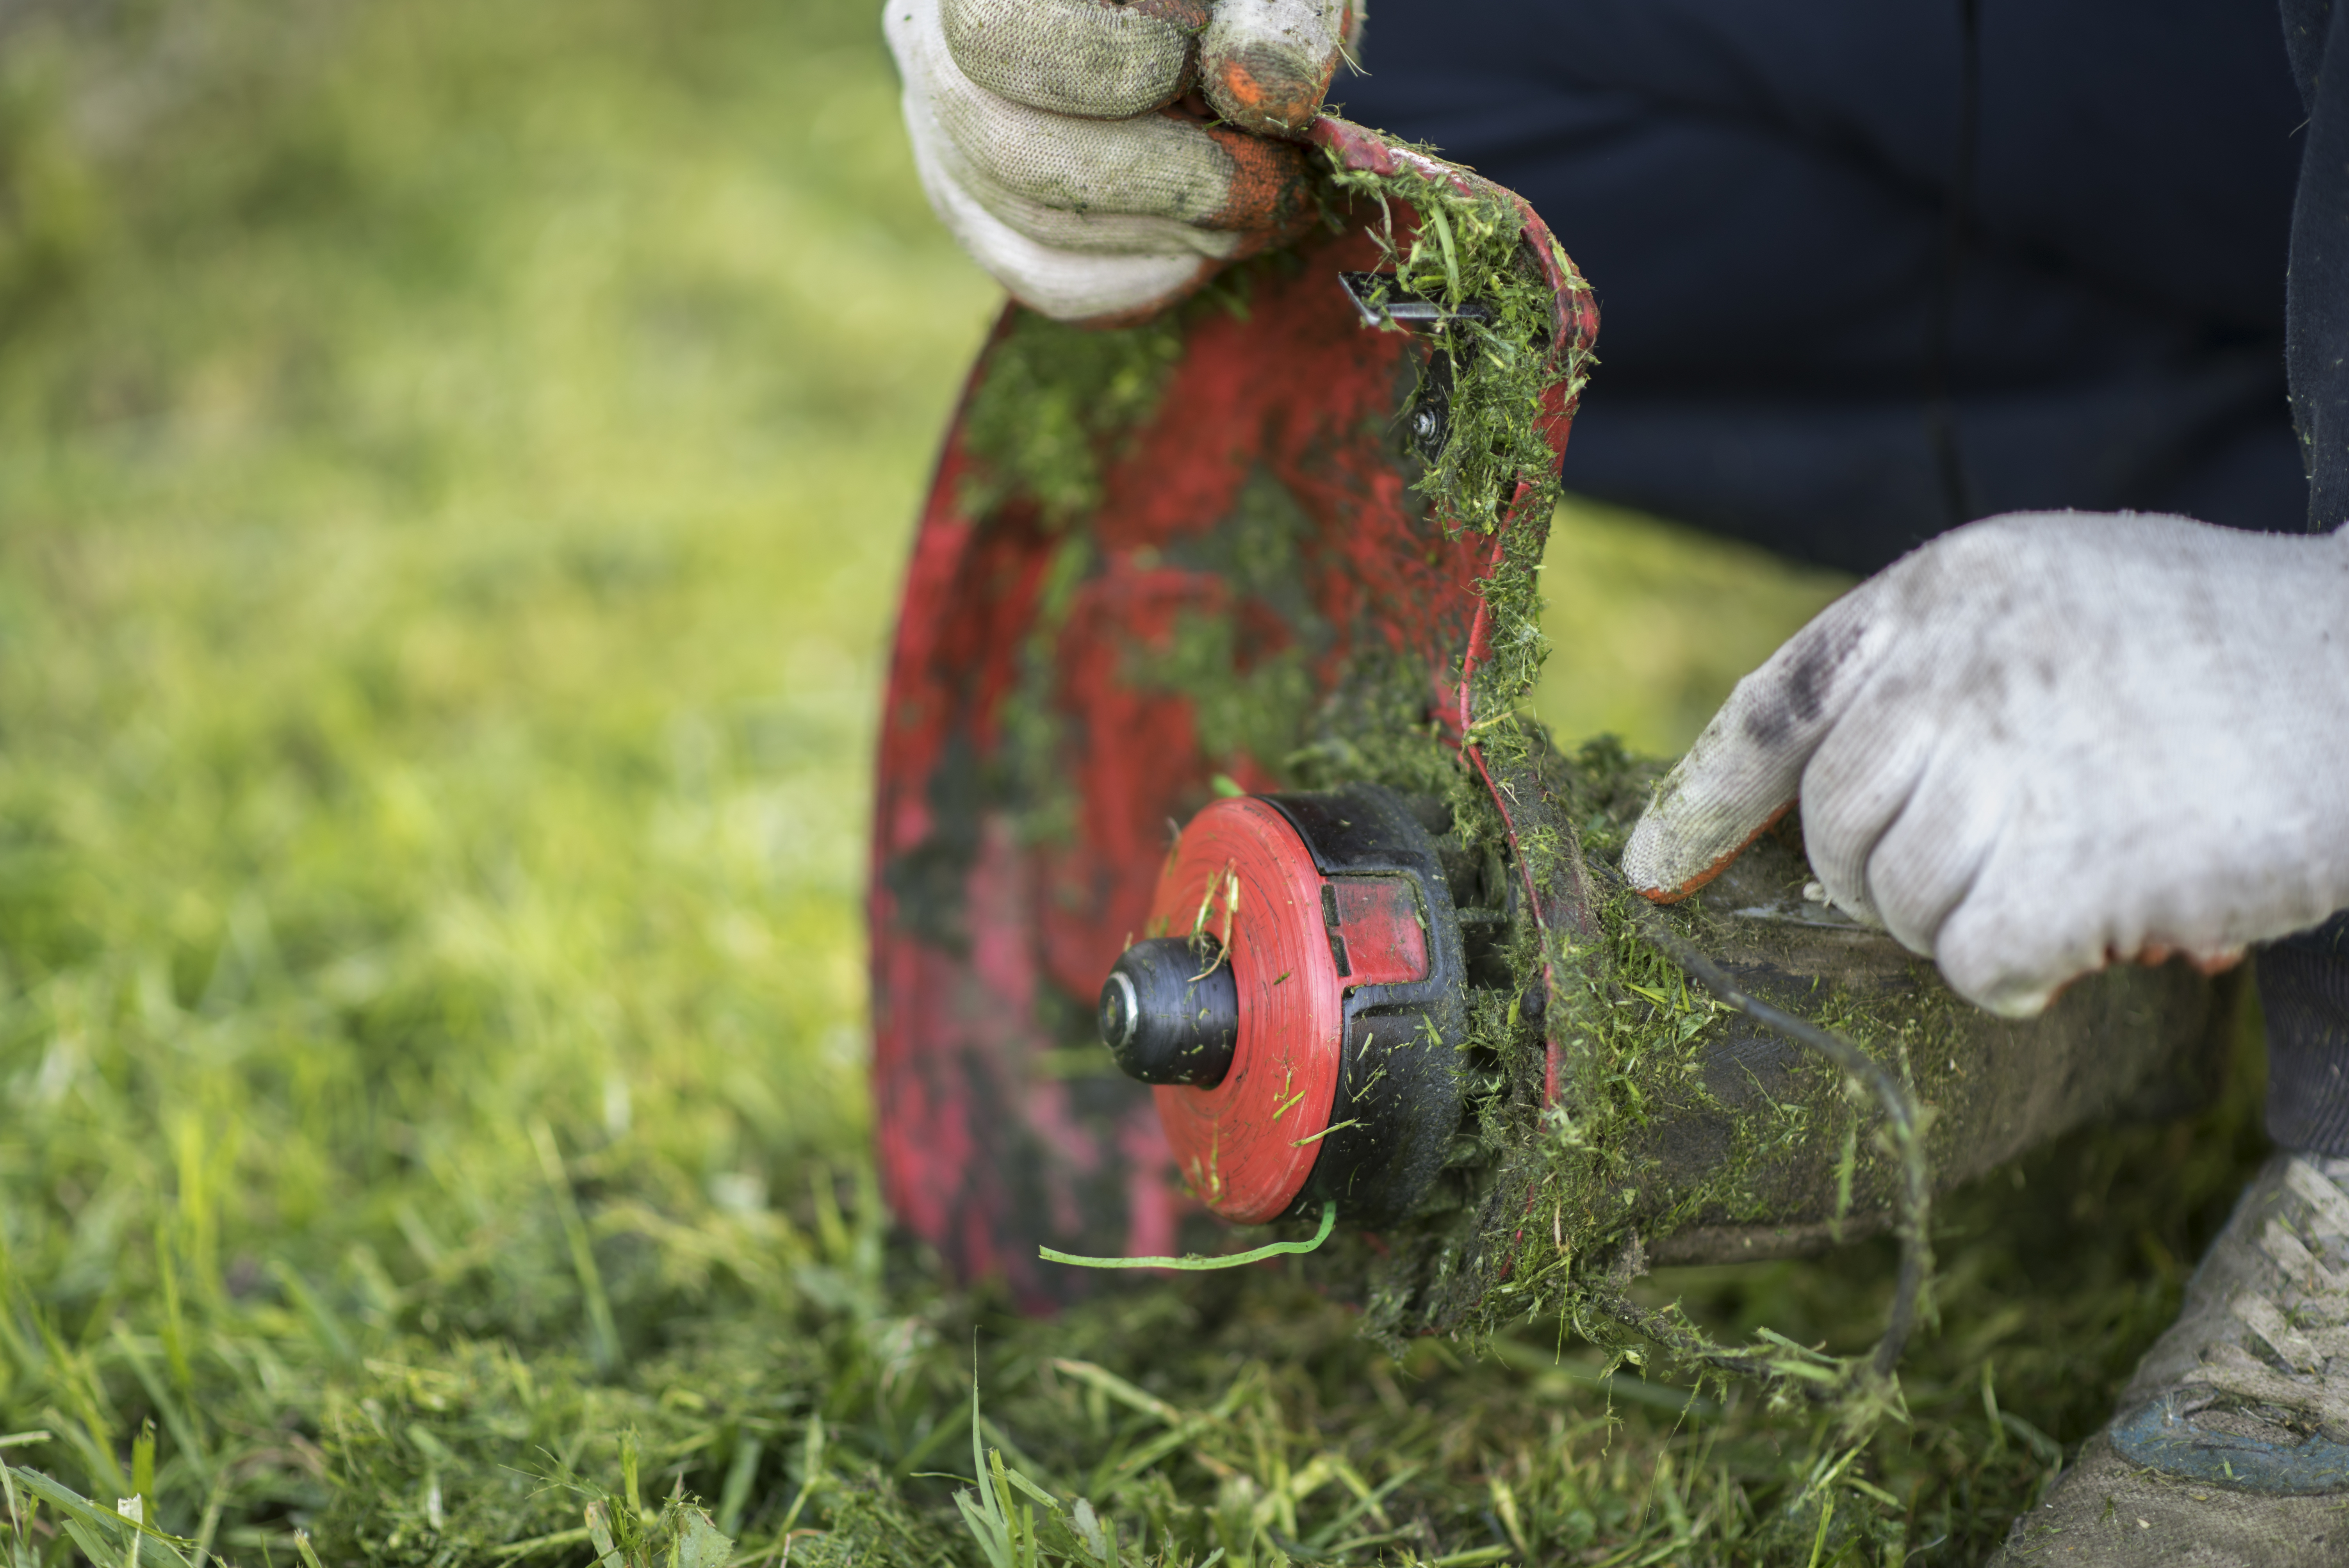 How to Repair a Grass Trimmer That Only Runs in Choke | Hunker